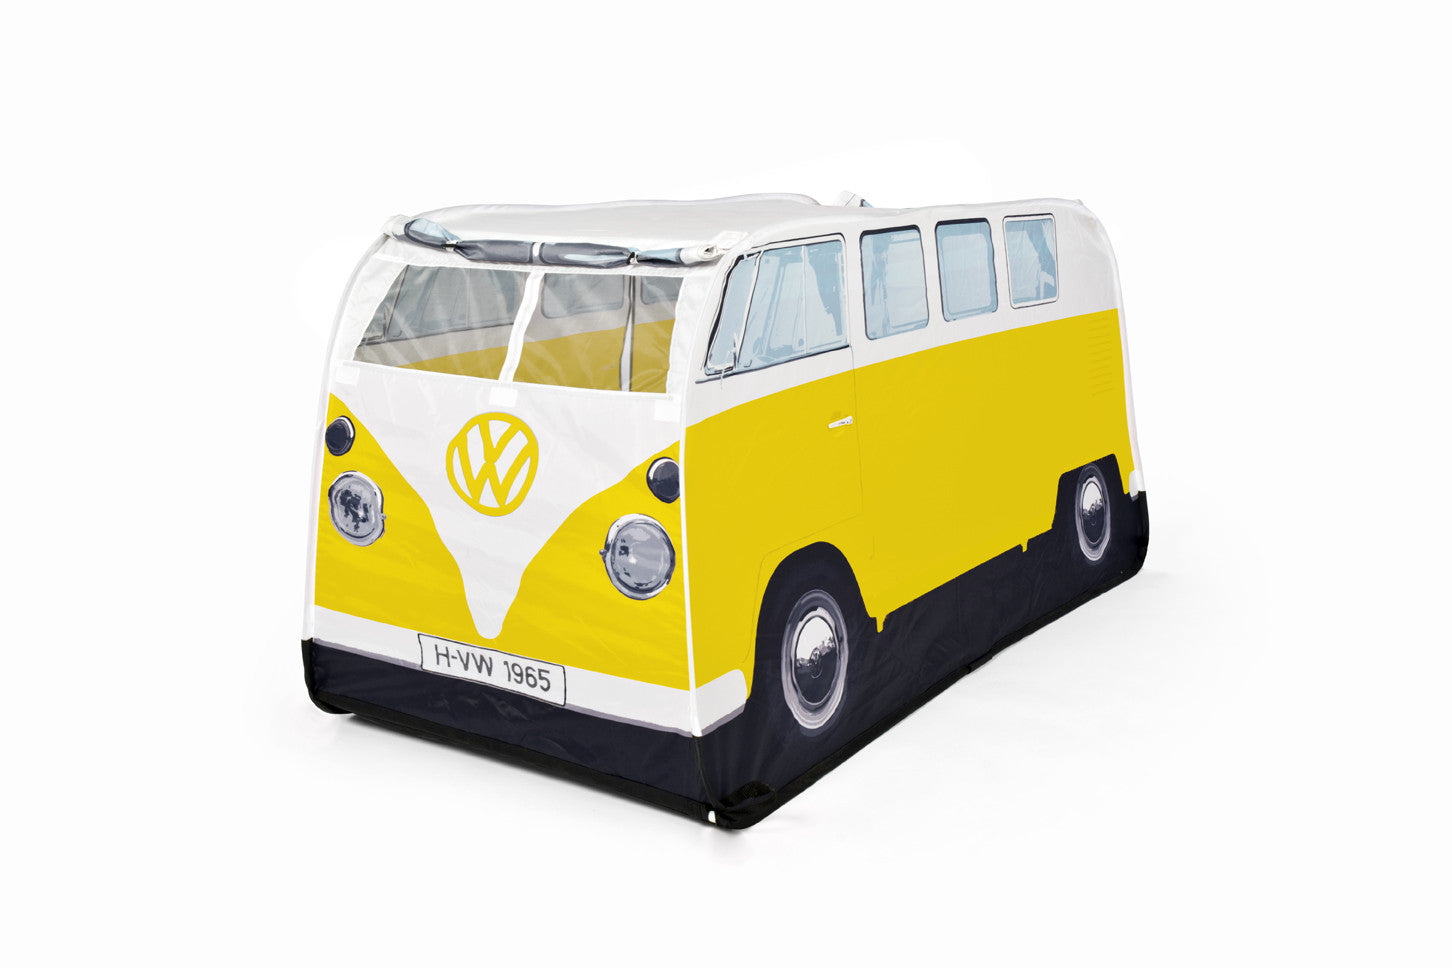 Kidu0027s VW Pop-Up Tent-Yellow - Cool VW Stuff - 1  sc 1 st  Cool VW Stuff & Cool VW Stuff Kidu0027s Pop-Up Tent-Yellow Bus VWKY1 Monster Factory